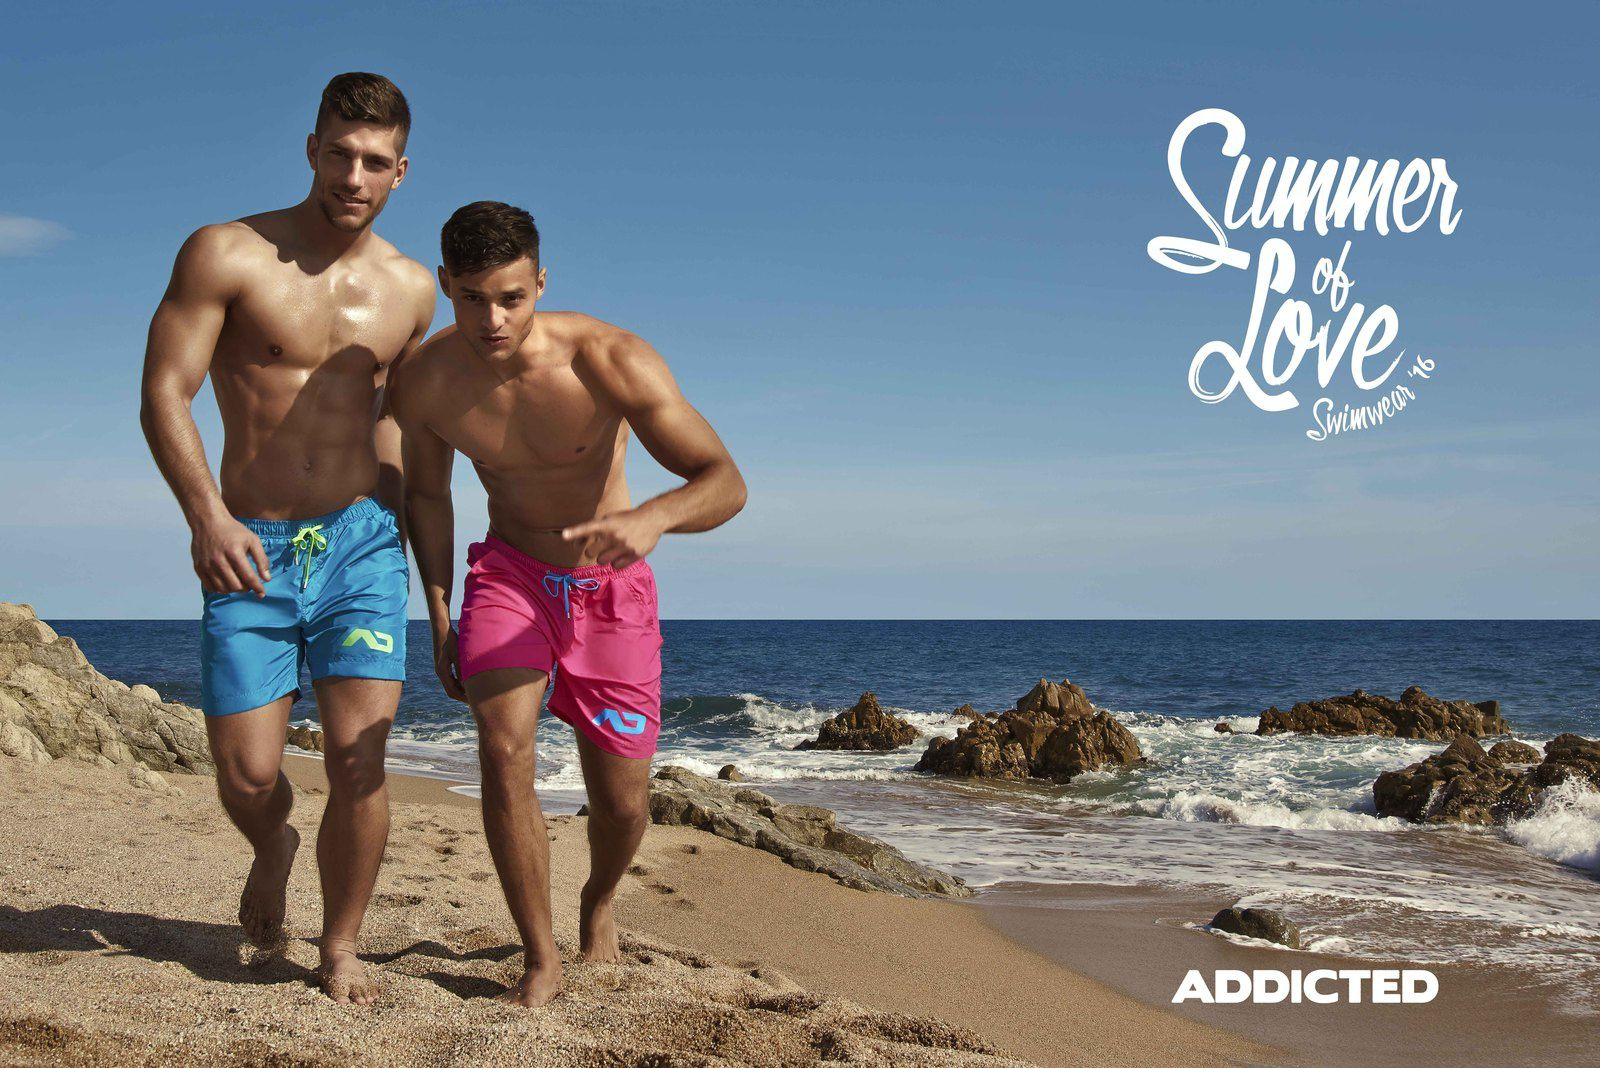 ADDICTED SWIMWEAR 2016